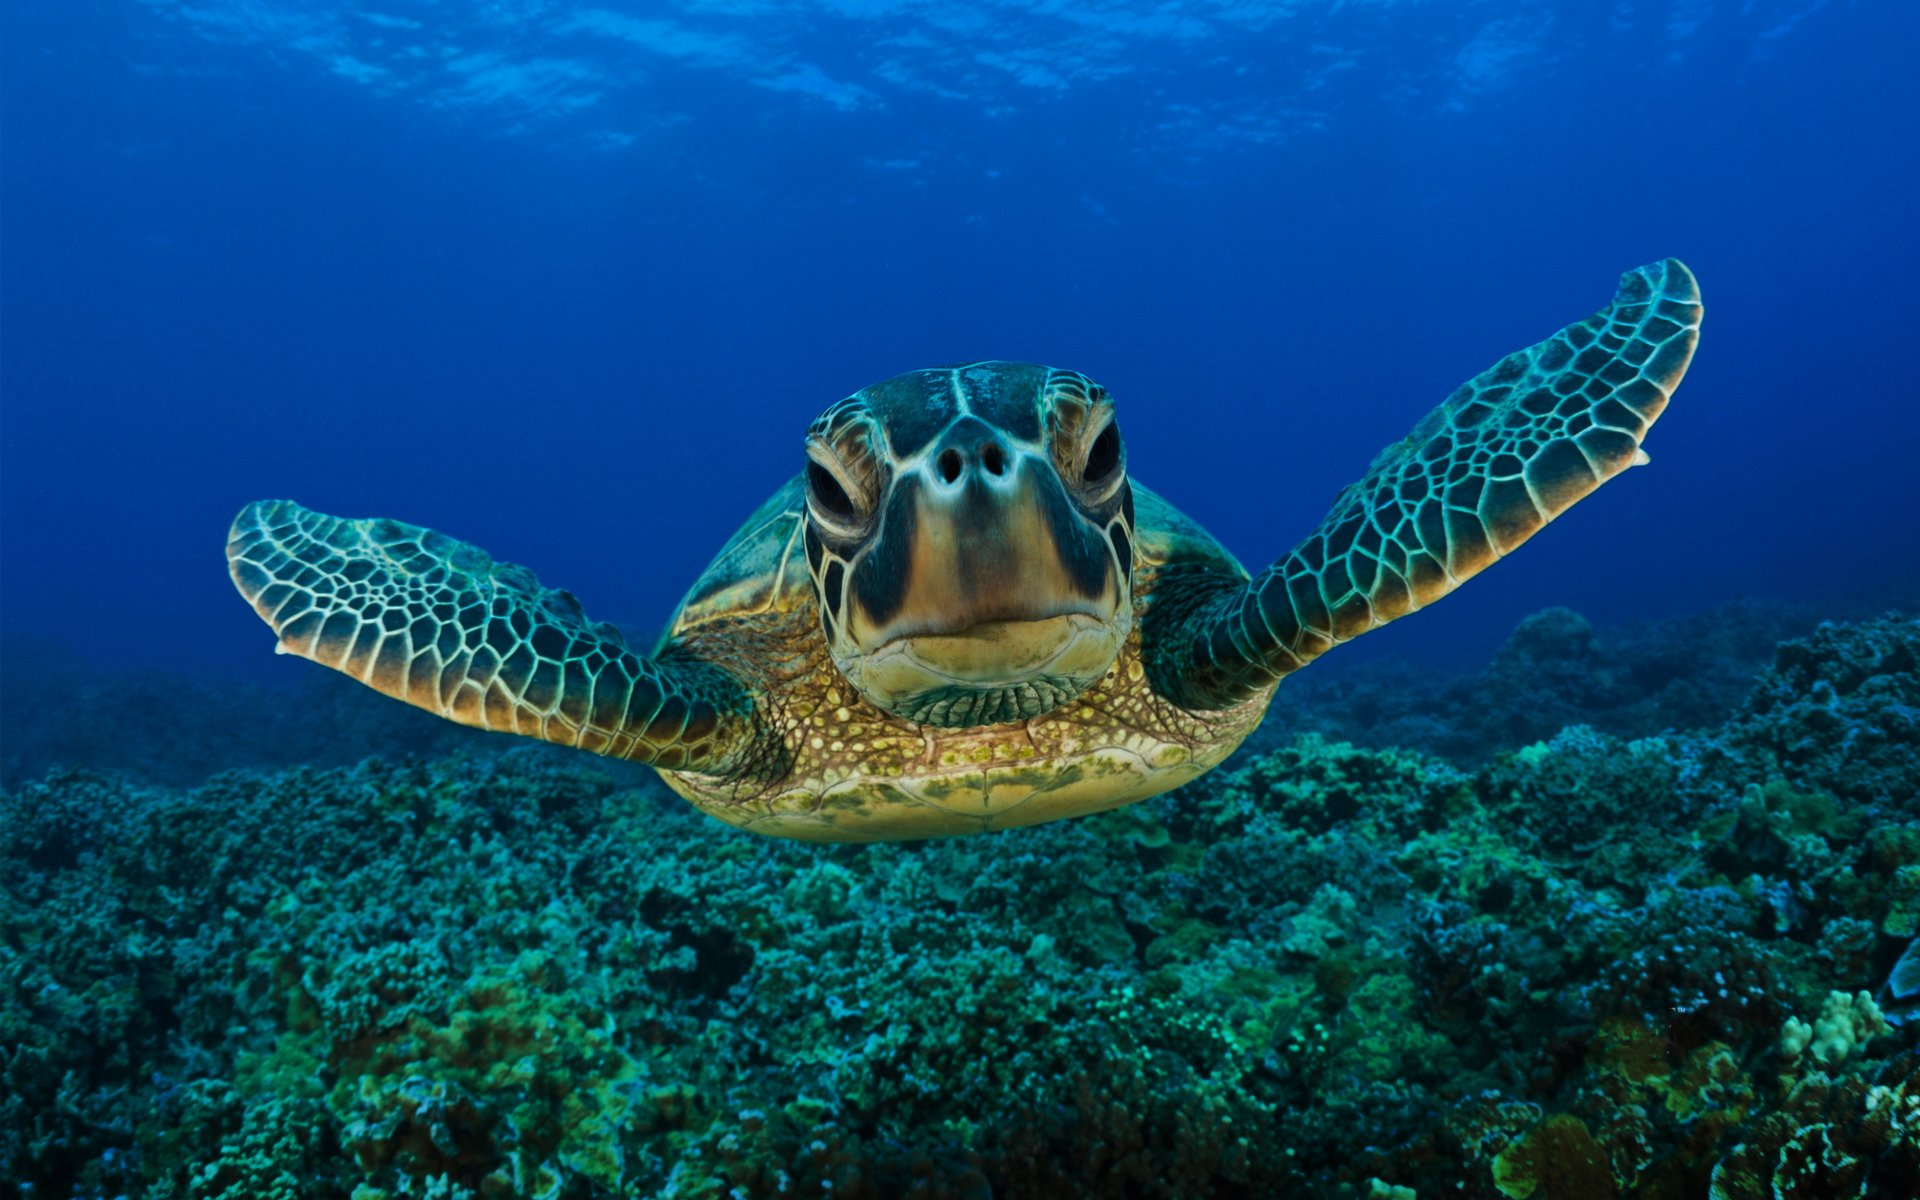 Sea Turtles Wallpaper 255 Turtle Hd Wallpapers Background Images Wallpaper Abyss